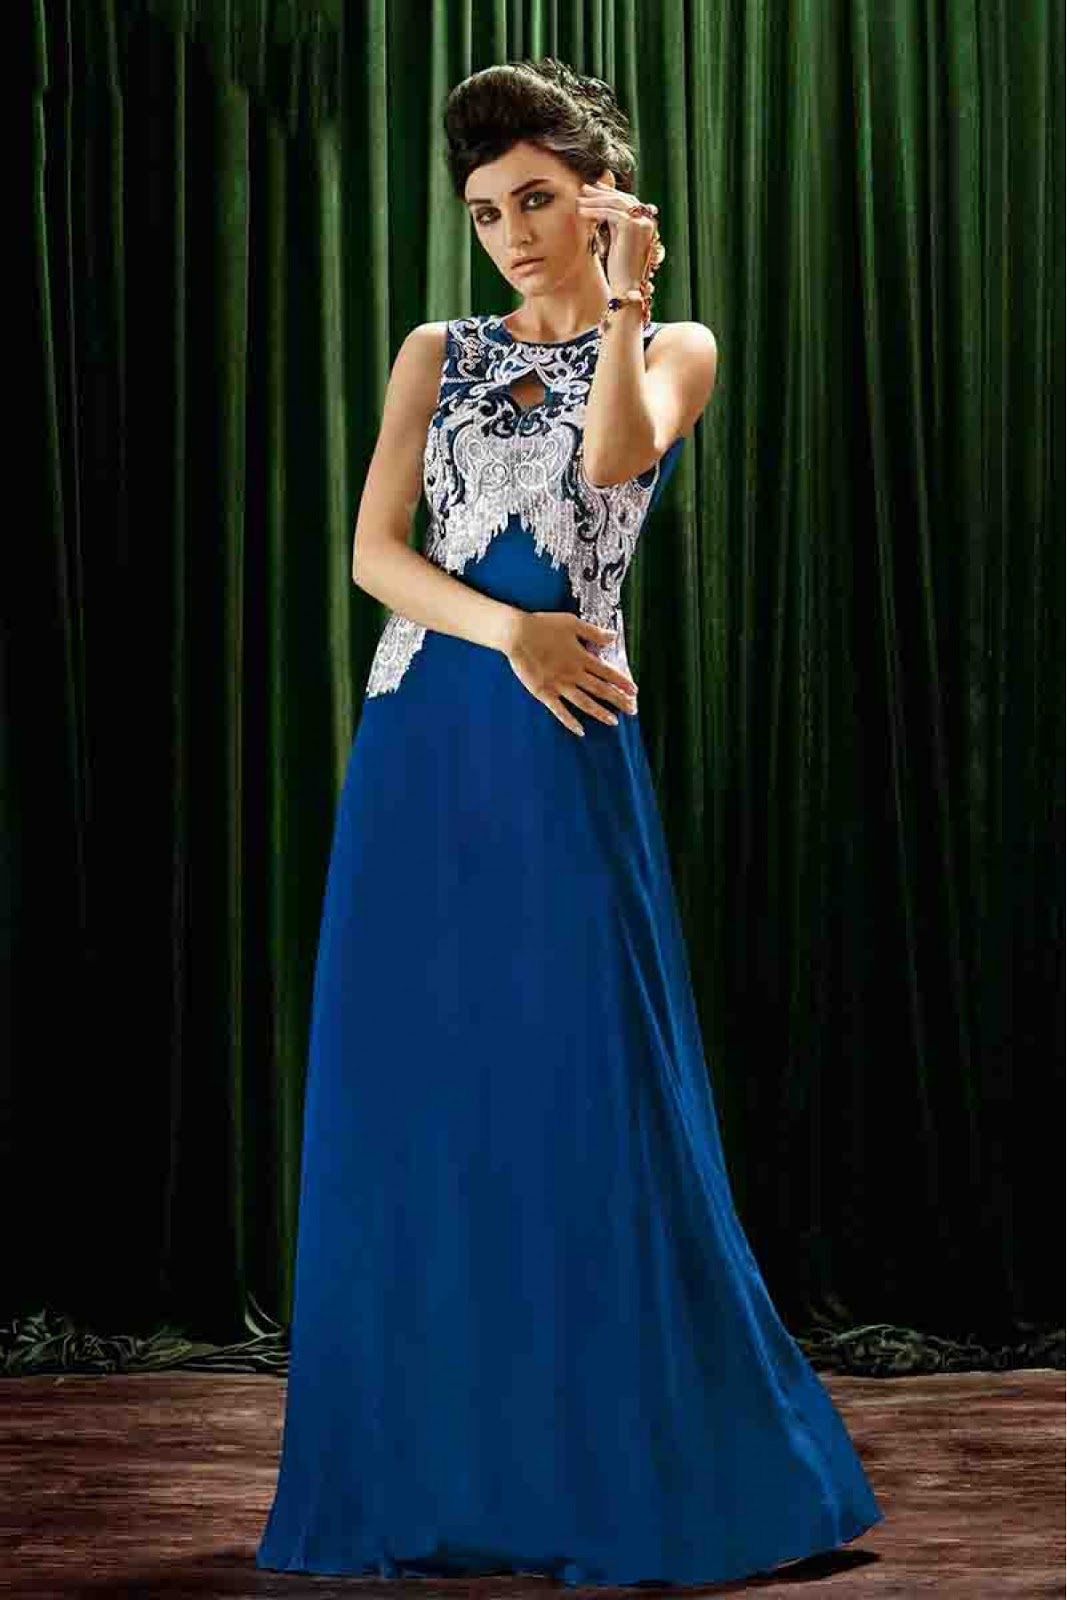 Cool wedding dresses for young bridesmaid dress hire online bridesmaid dress hire online ombrellifo Images